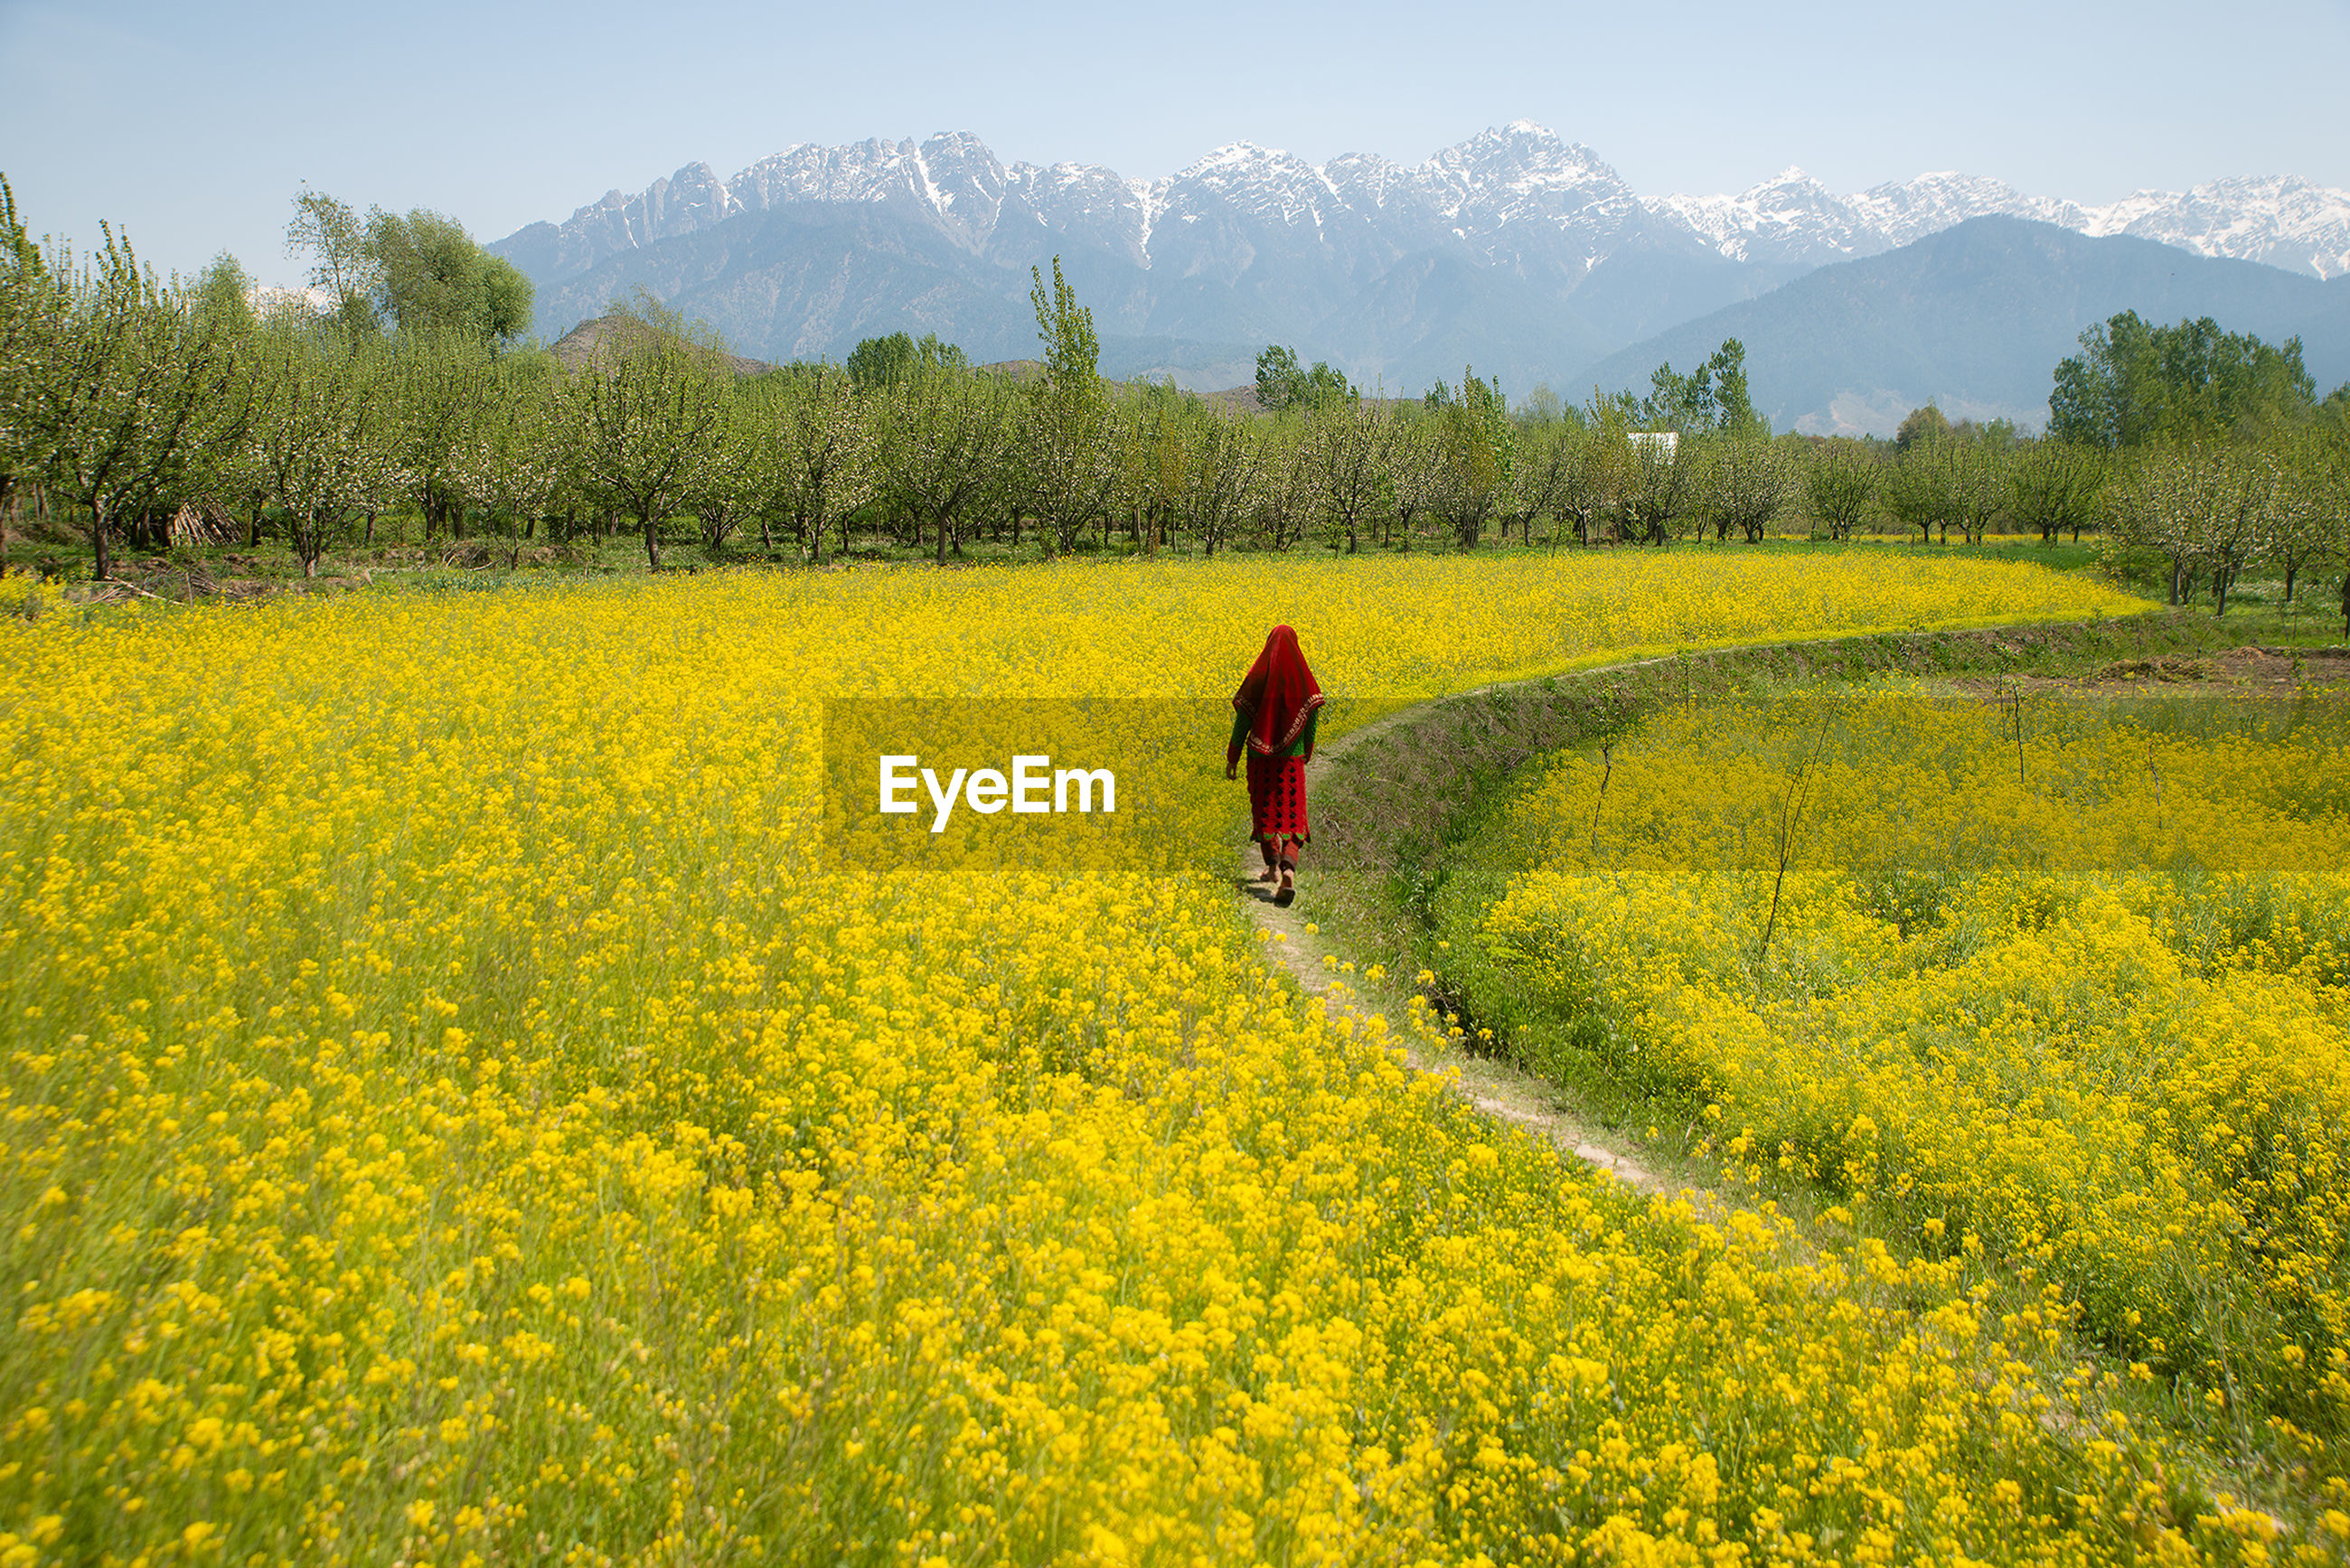 Rear view of woman walking amidst yellow flowering plant